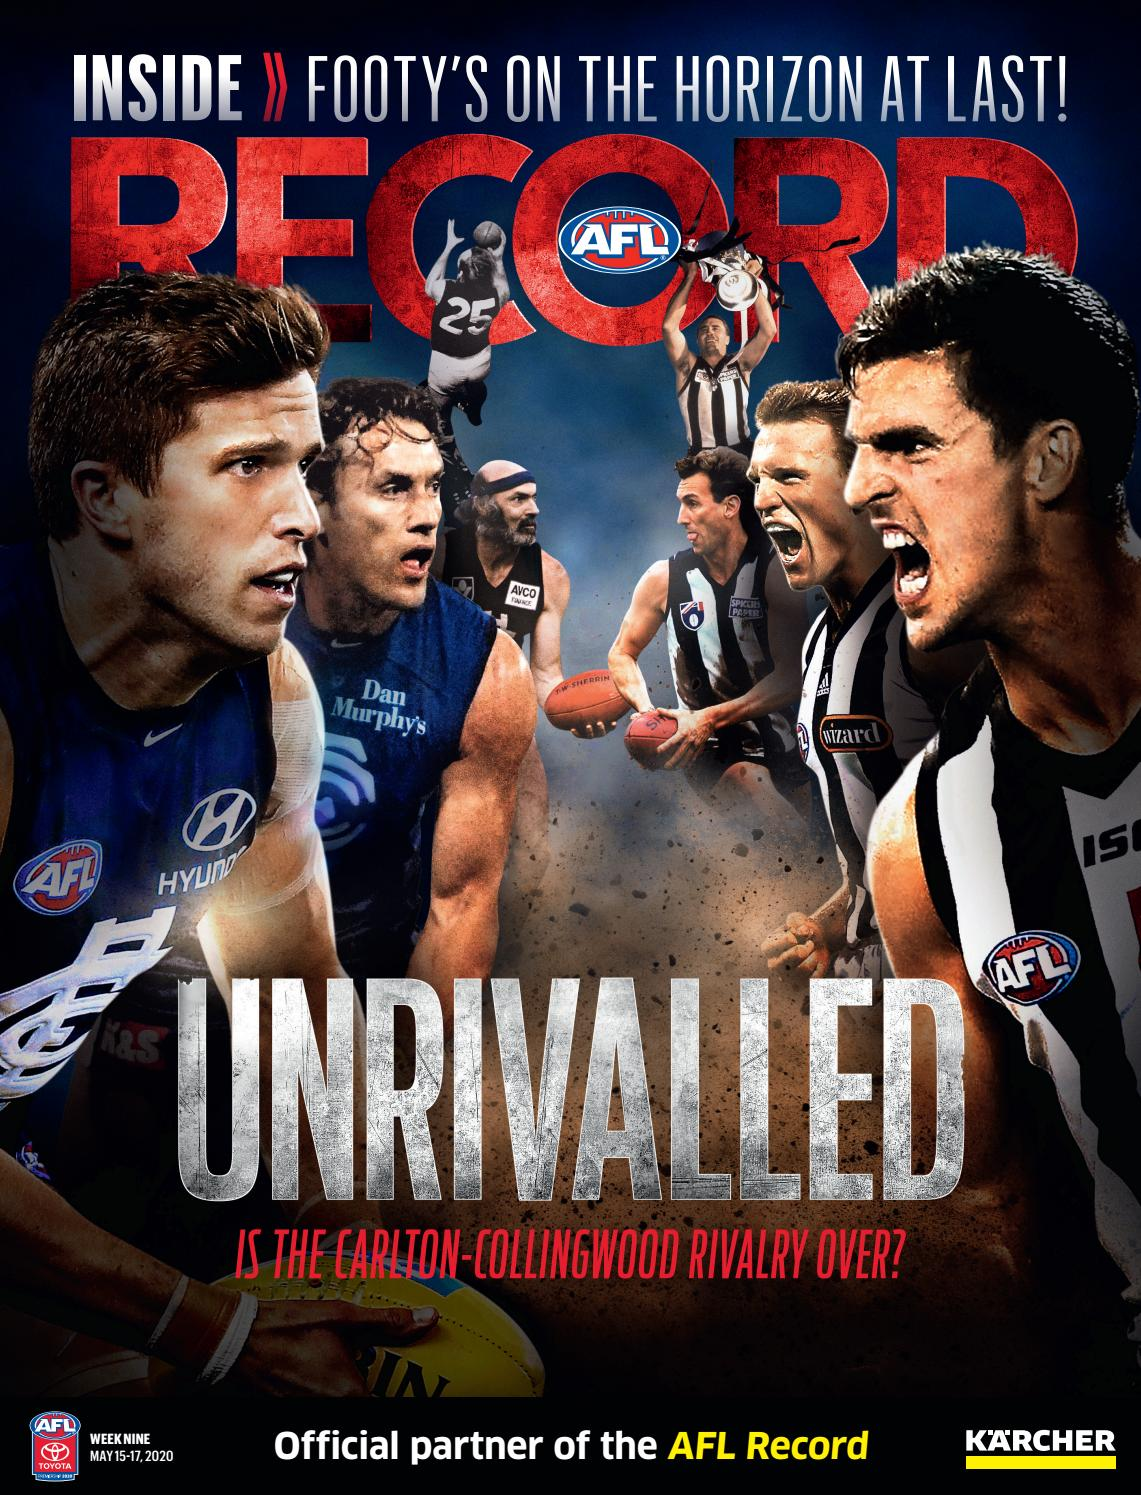 Afl betting top 80s rock world cup 2021 top scorer betting on sports